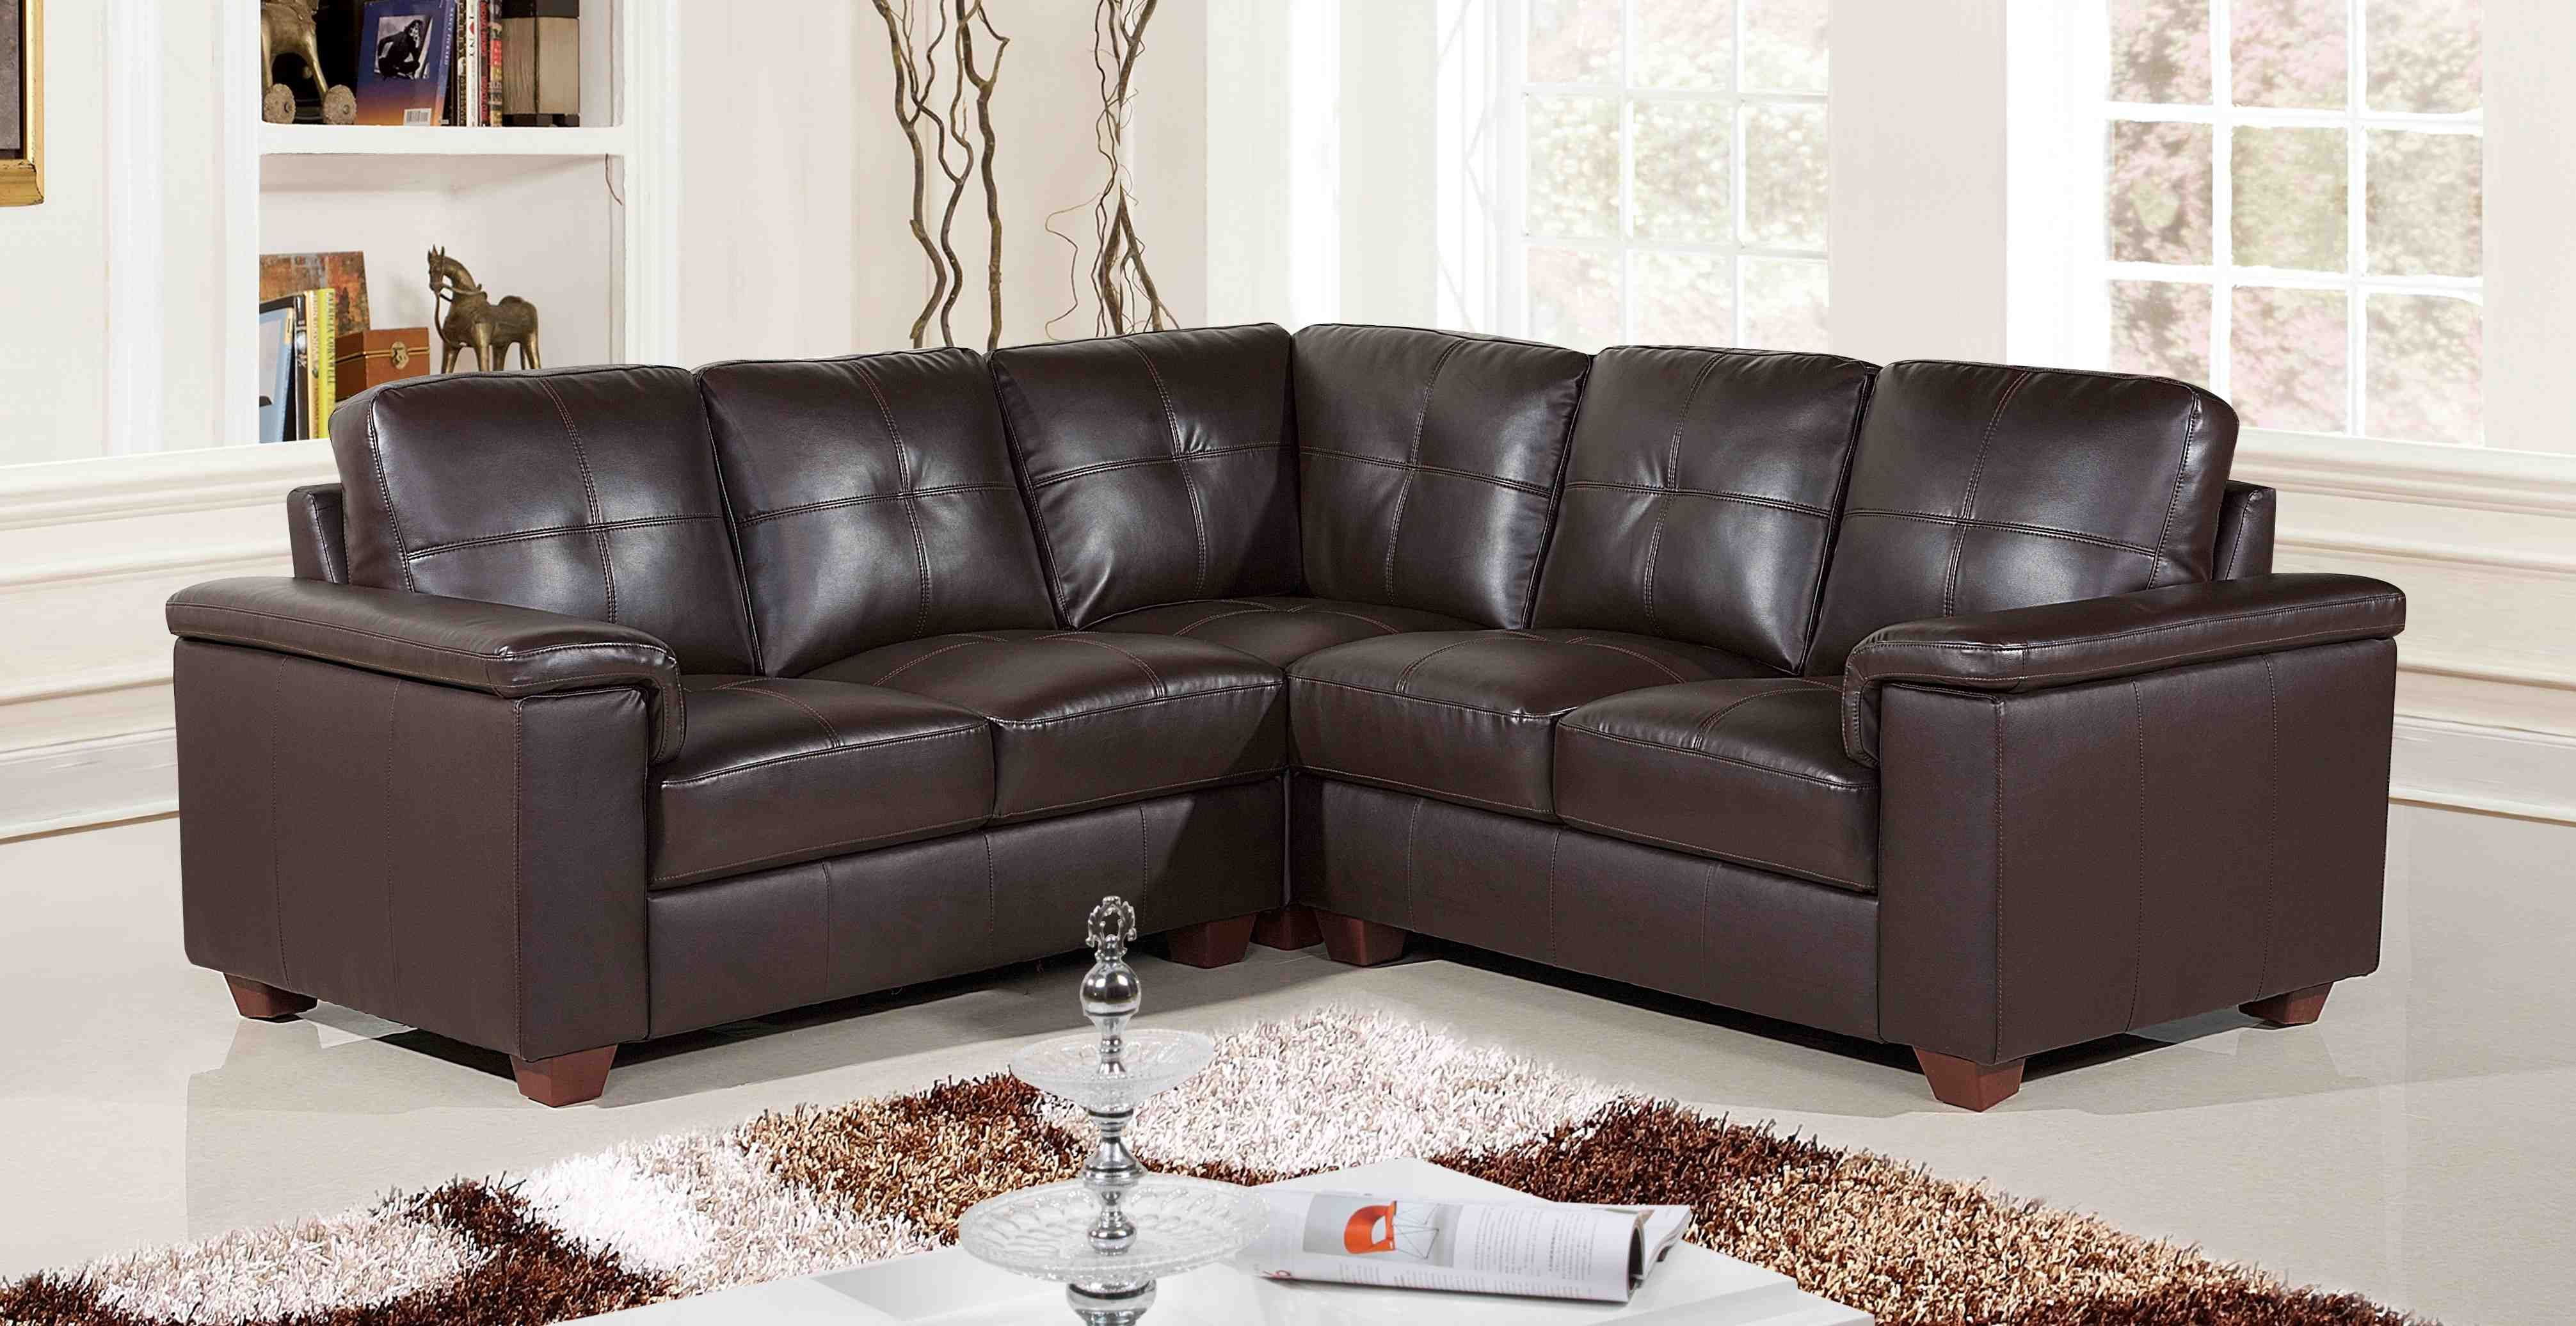 Sofa Set Sale Uk Tall Sectional Sofas Sofas Leather Suites Leather